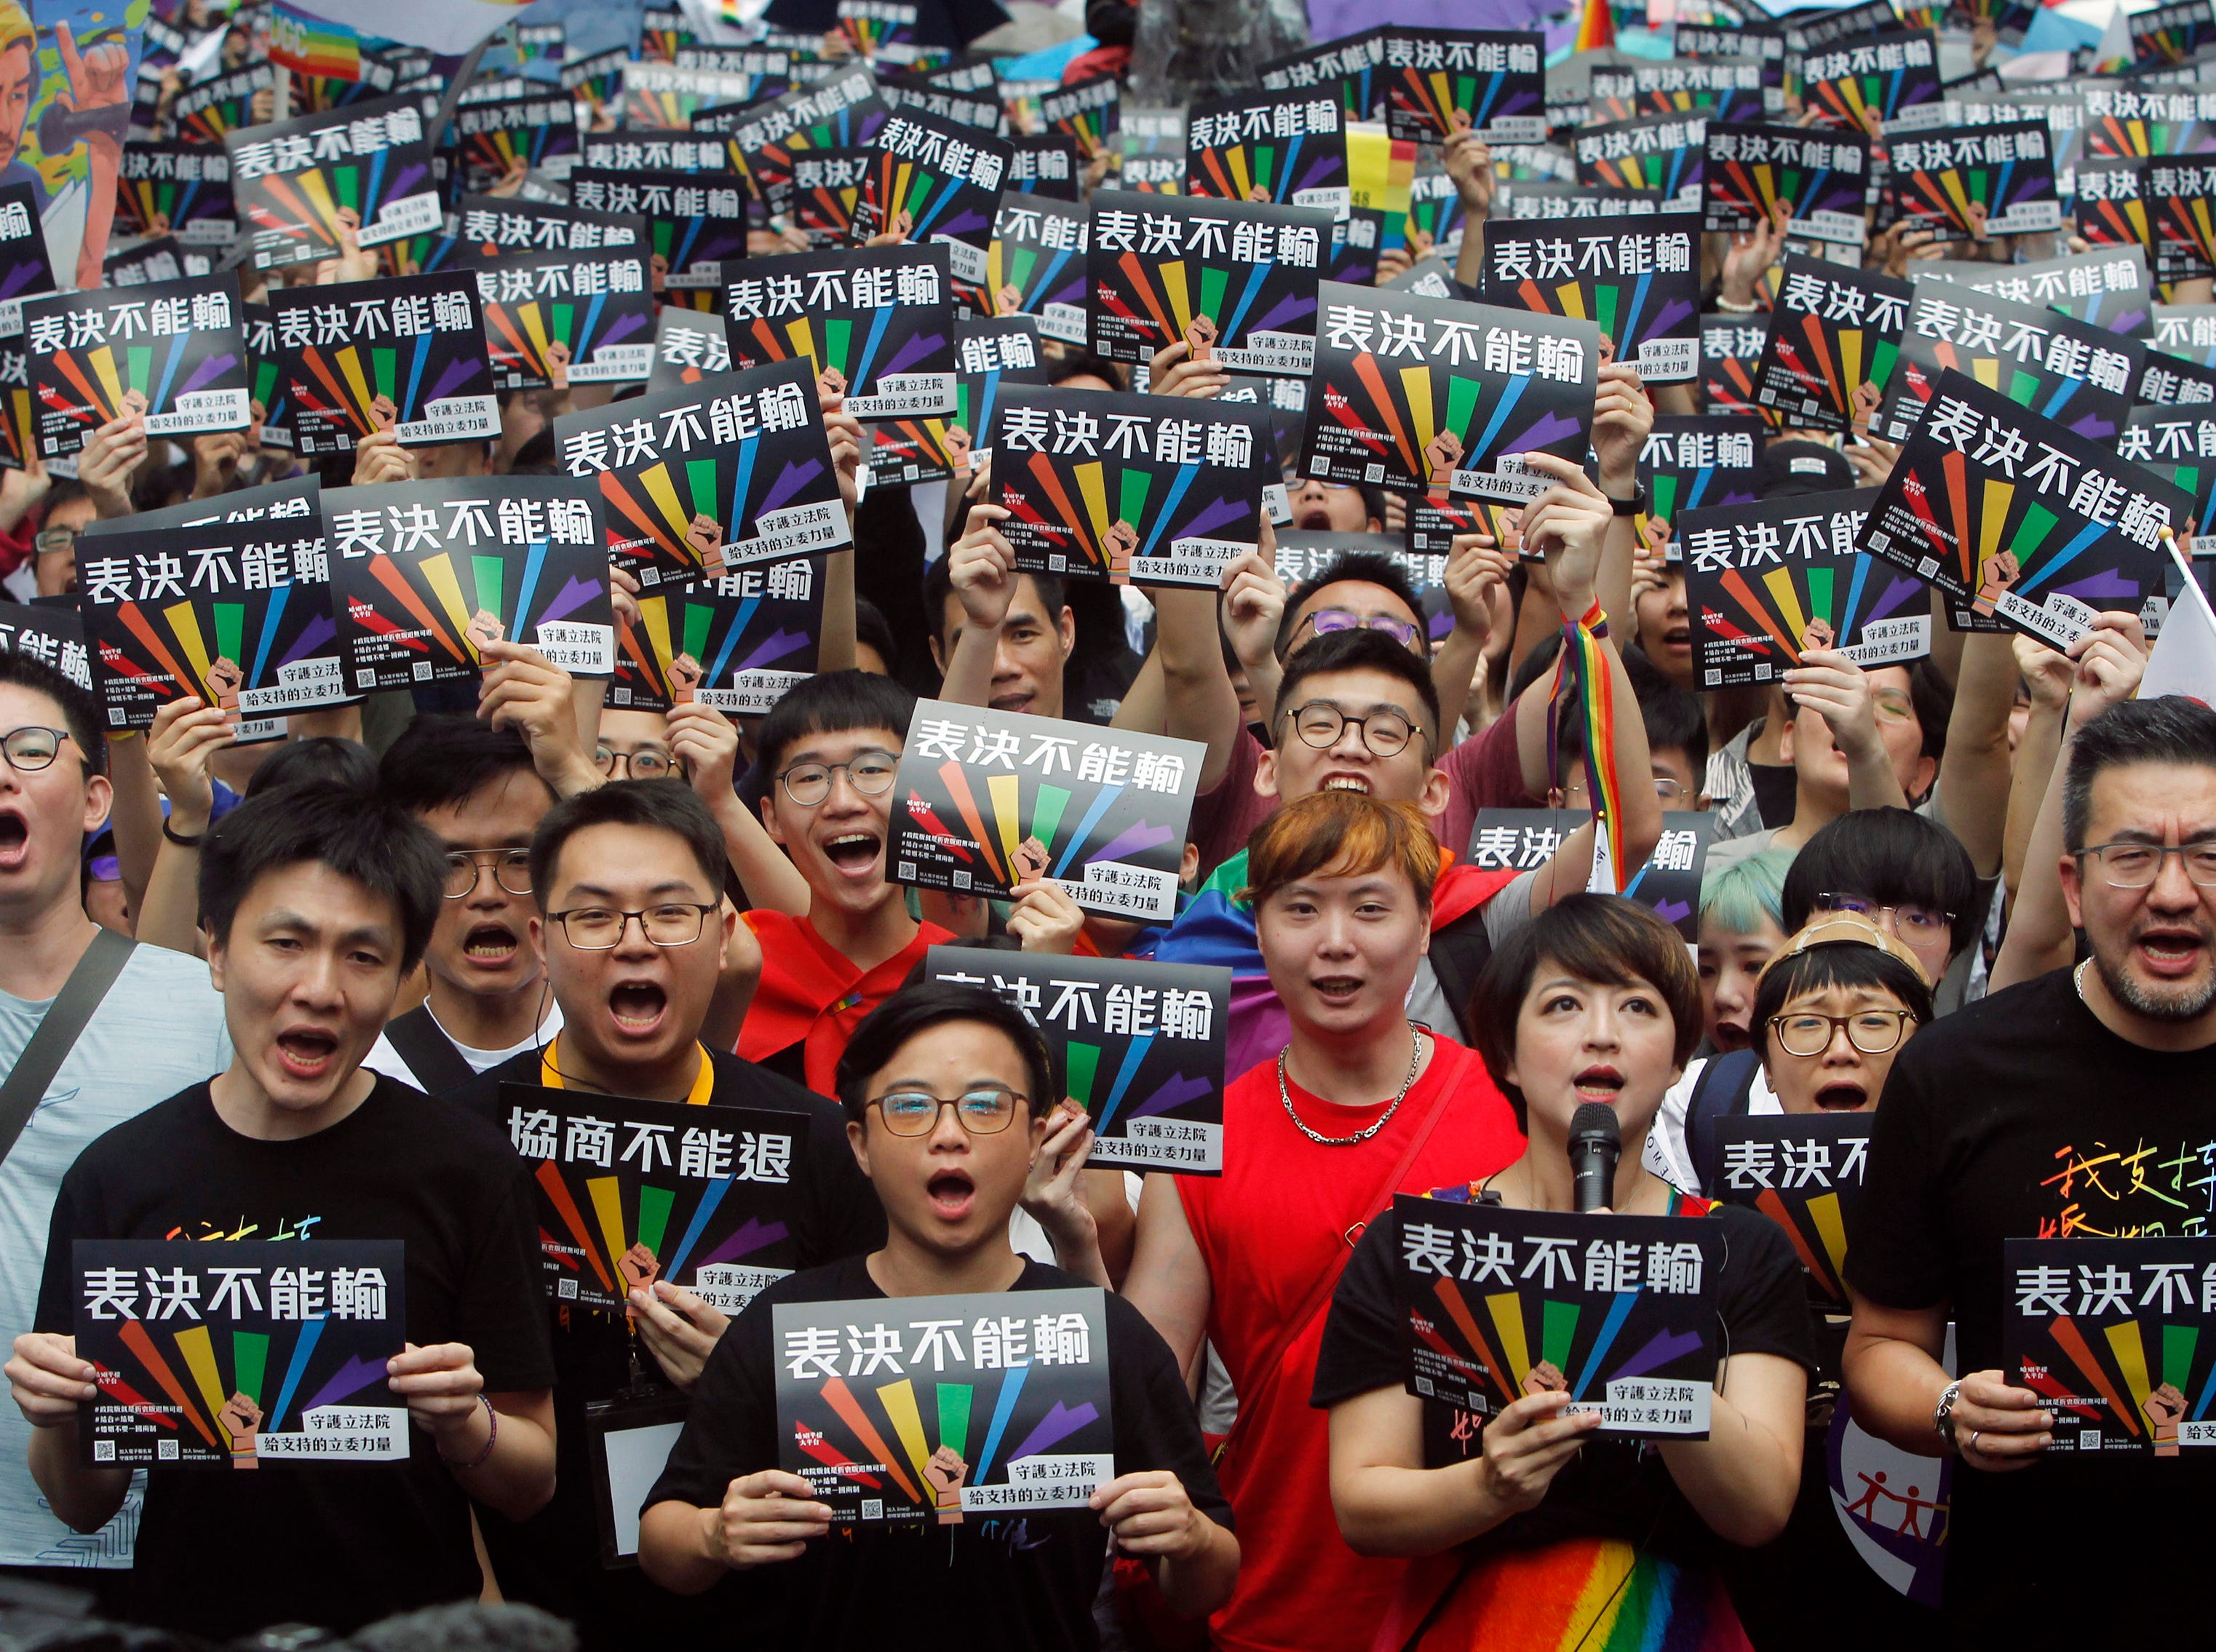 Same-sex marriage supporters gather outside the Legislative Yuan in Taipei, Taiwan, Friday, May 17, 2019. Taiwan's Constitutional Court are scheduled to decide Friday on legalizing same-sex marriage, marking a potential first in Asia. The signs read  ''Vote Can't Be Defeated.''